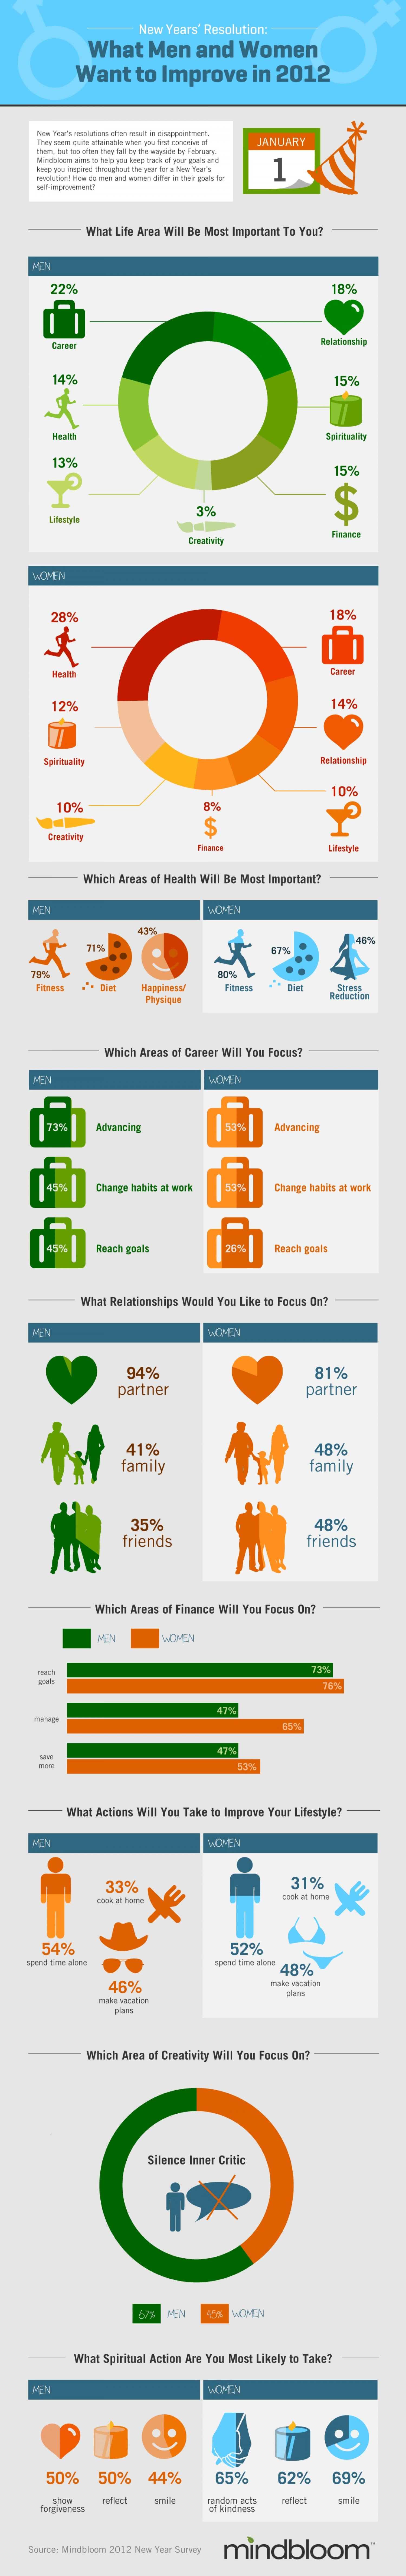 What Men and Women Want to Improve in 2012 Infographic